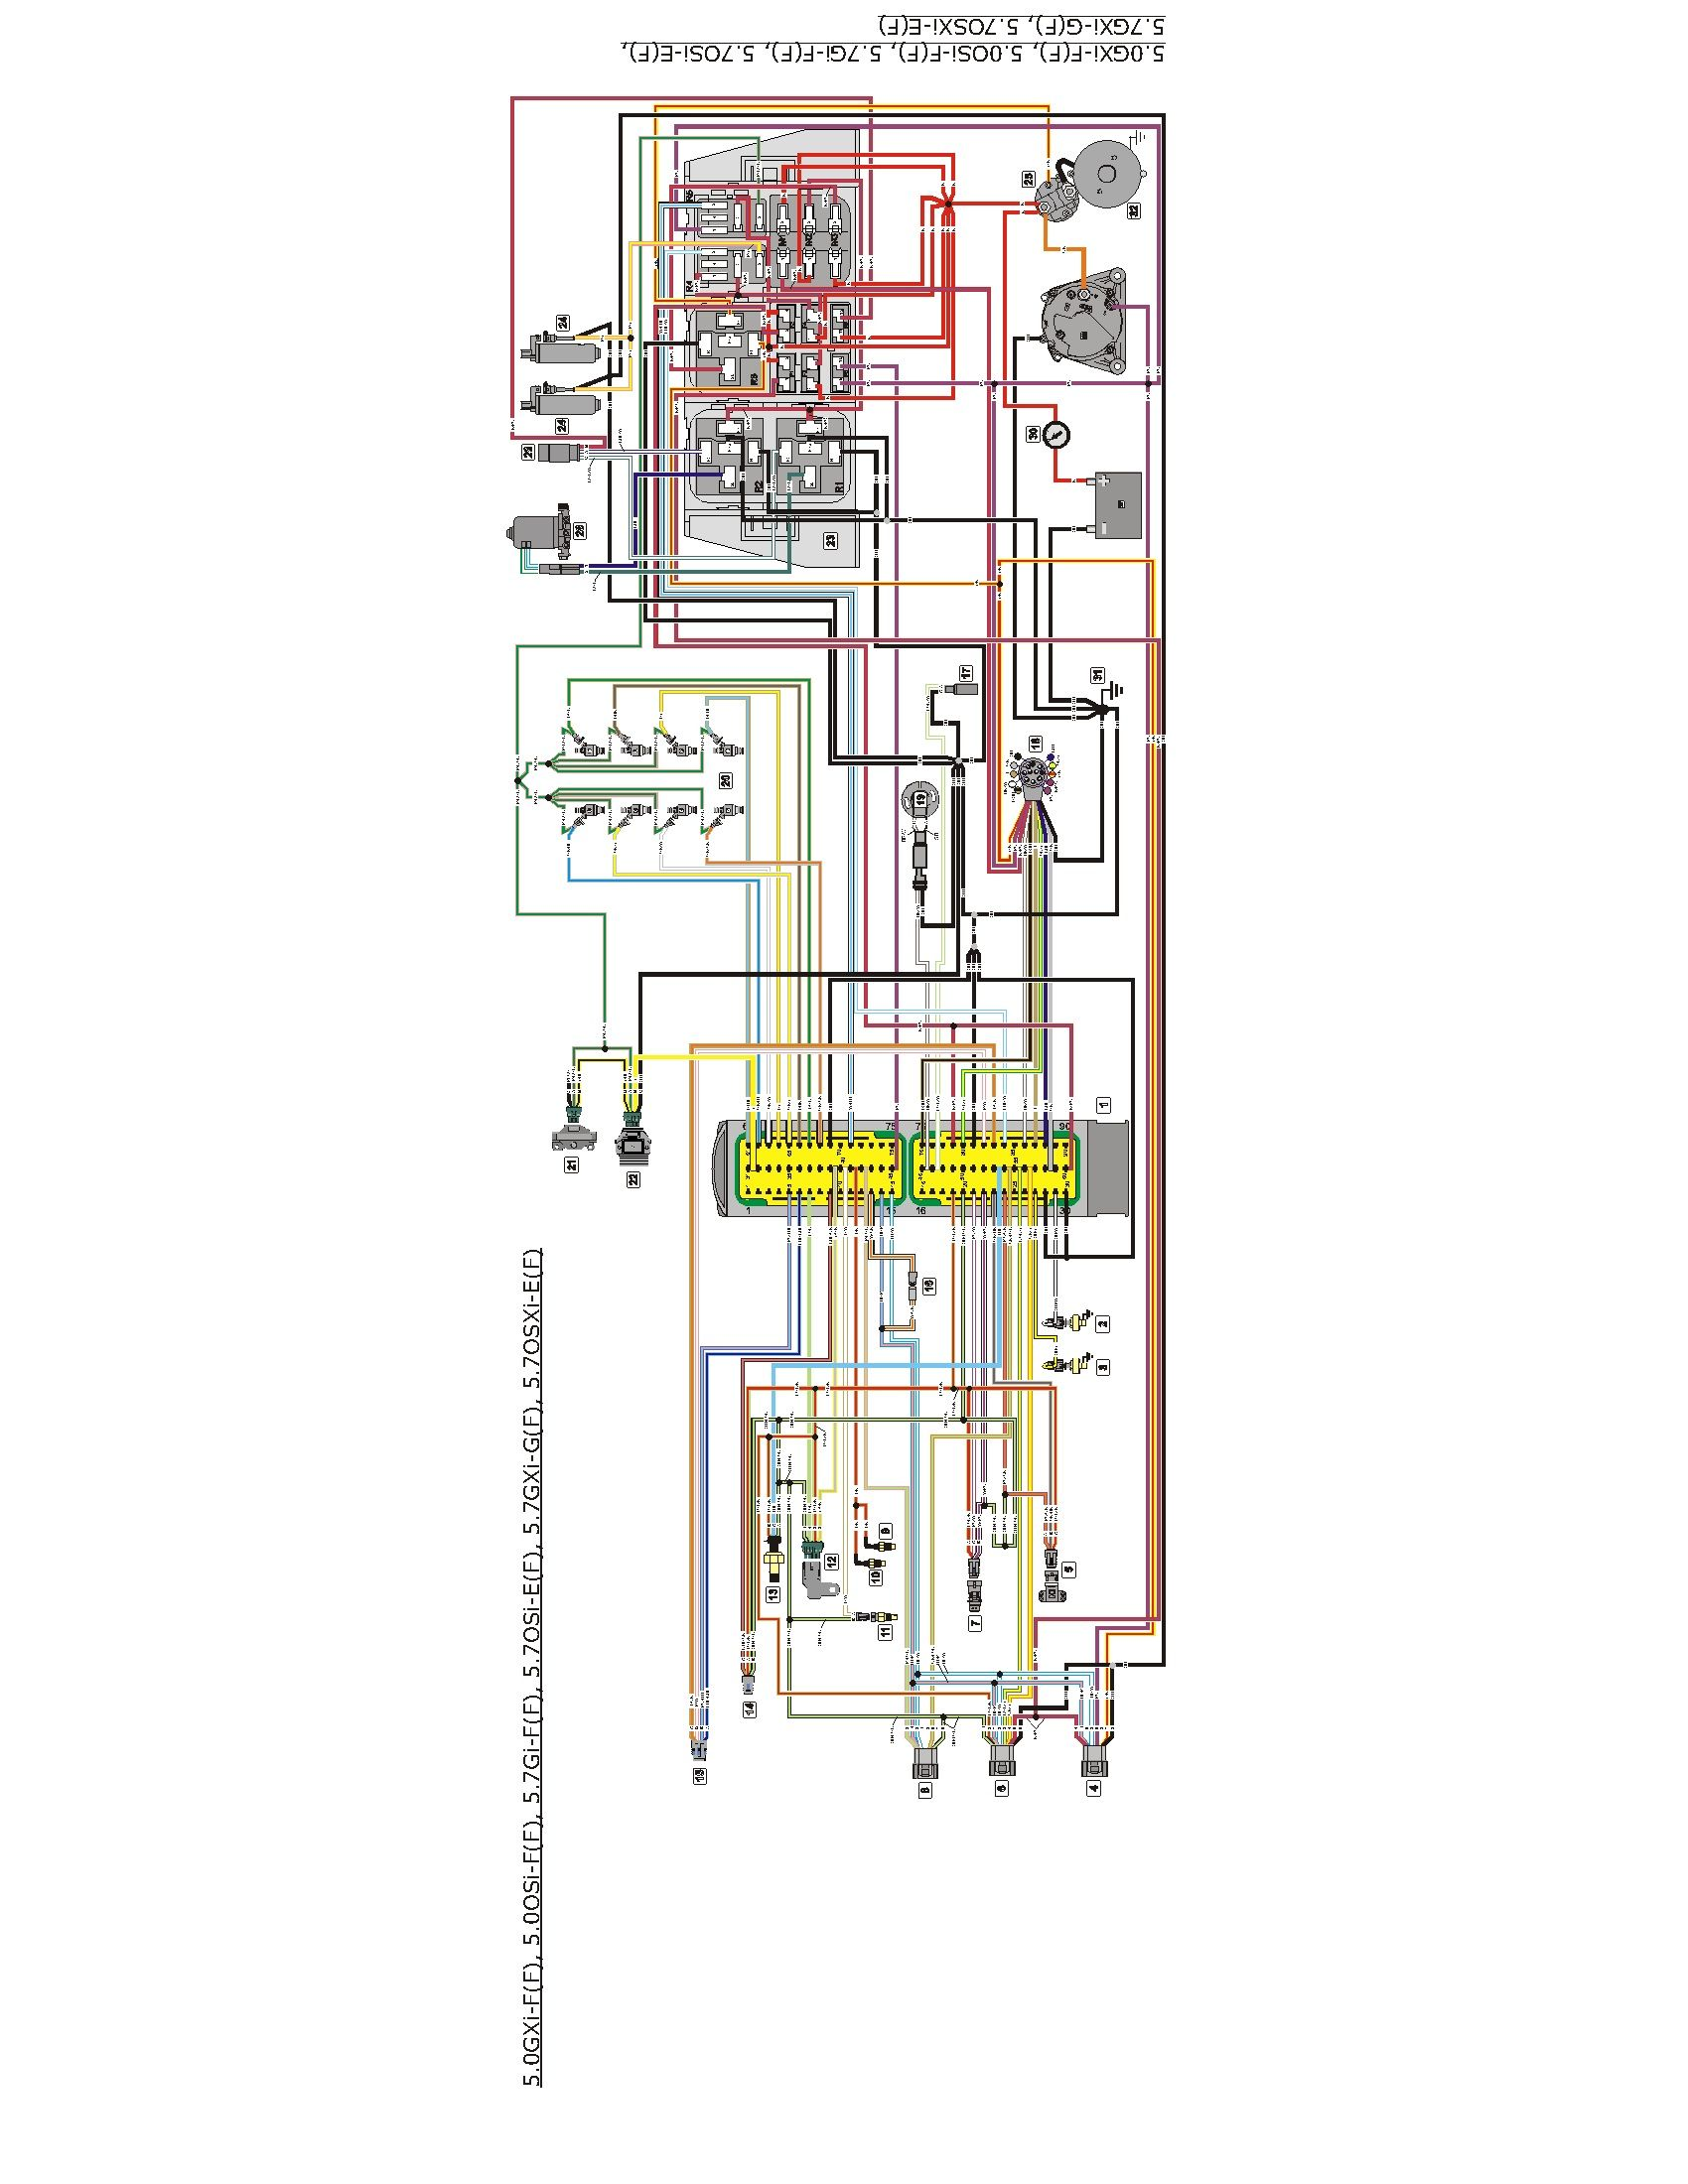 hight resolution of volvo penta 5 7 engine wiring diagram boat pinterest volvo rh pinterest com volvo d12 engine